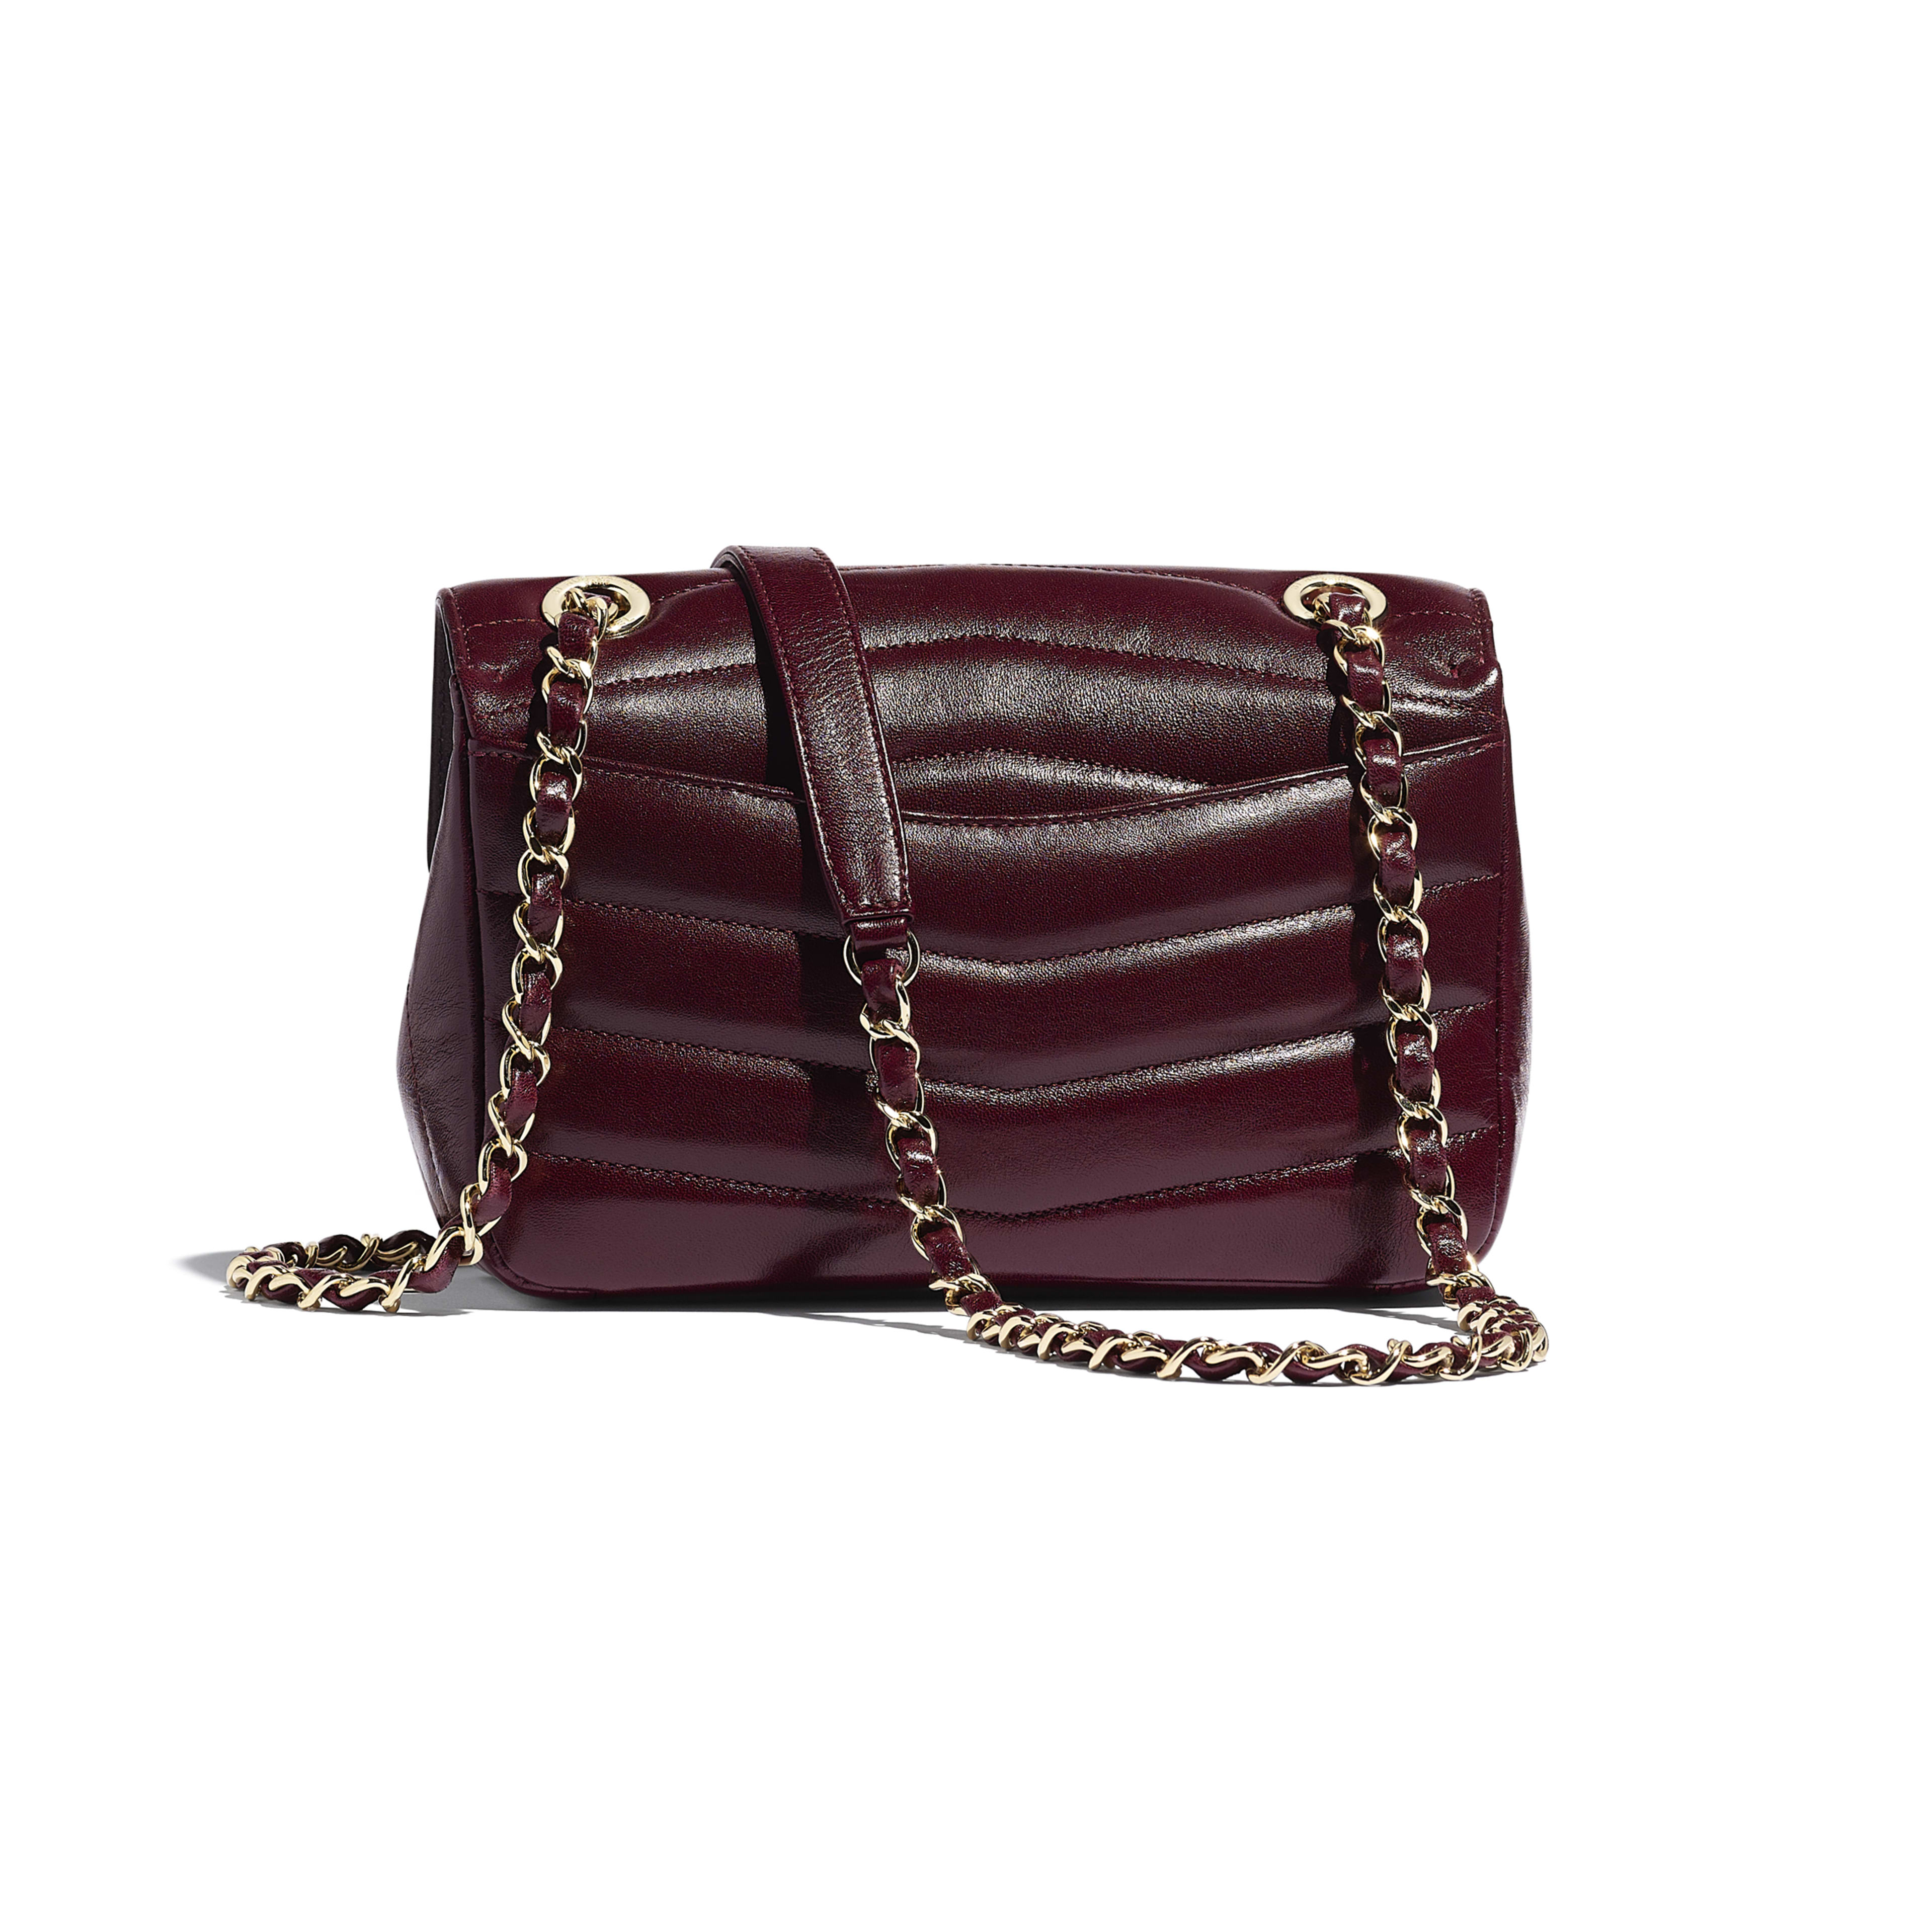 Flap Bag - Burgundy - Lambskin - Alternative view - see full sized version